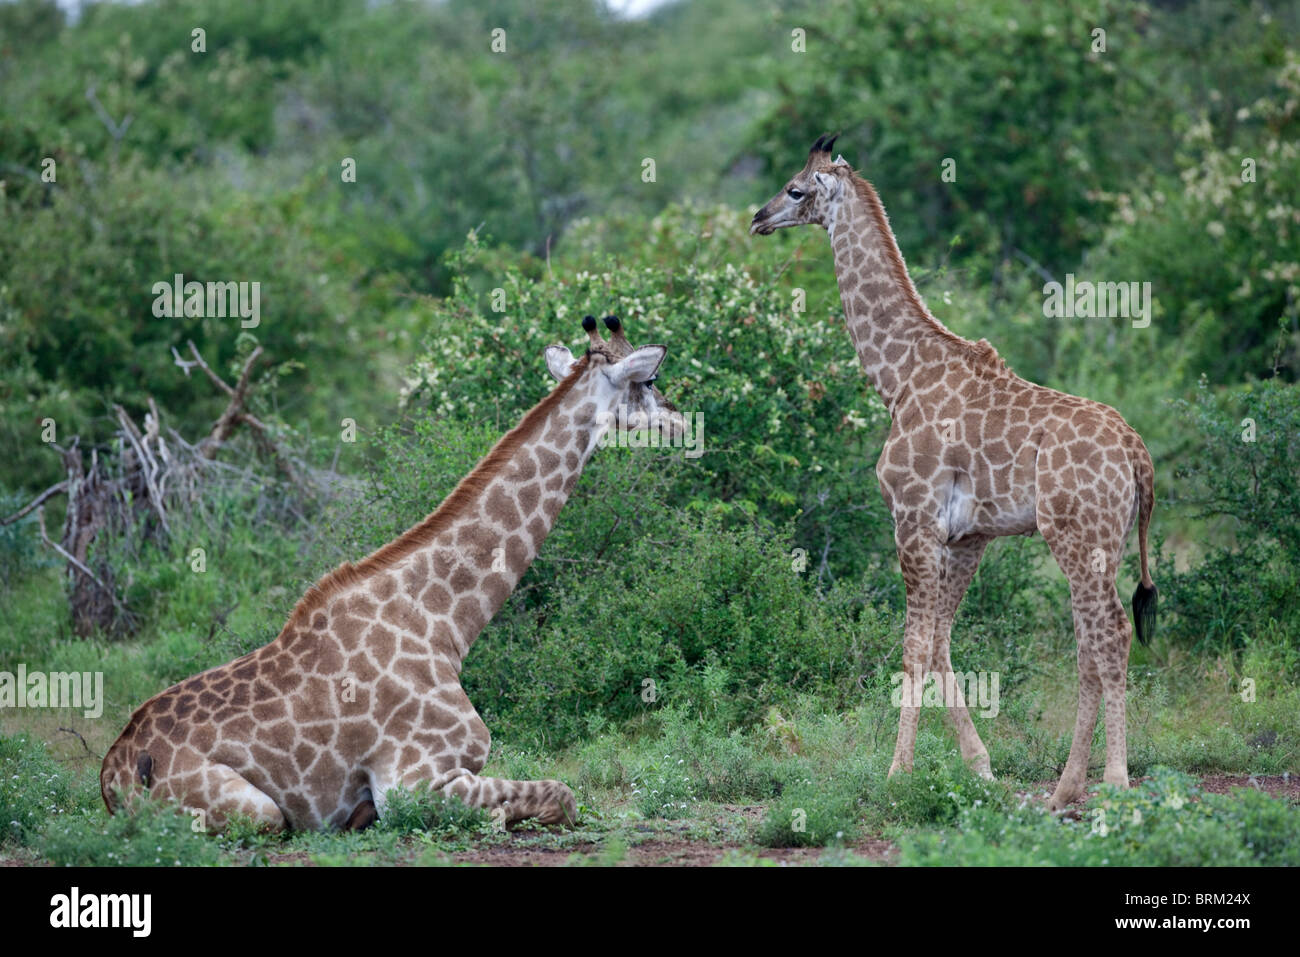 Giraffe resting on the ground with a youngster standing nearby - Stock Image